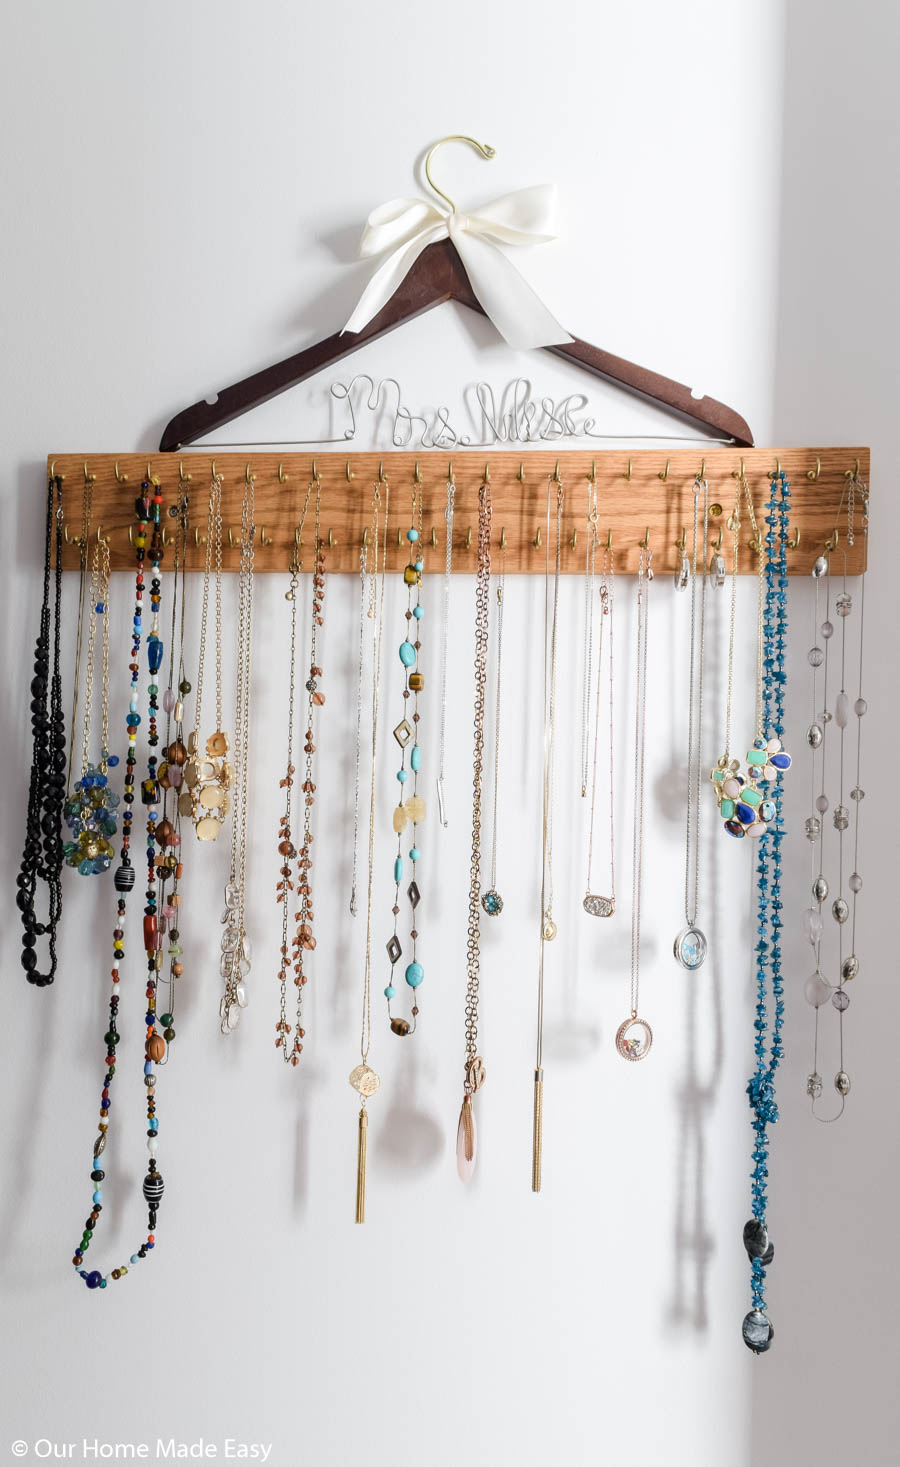 A special necklace organizer is a great way to organize jewelry and keep your favorite pieces